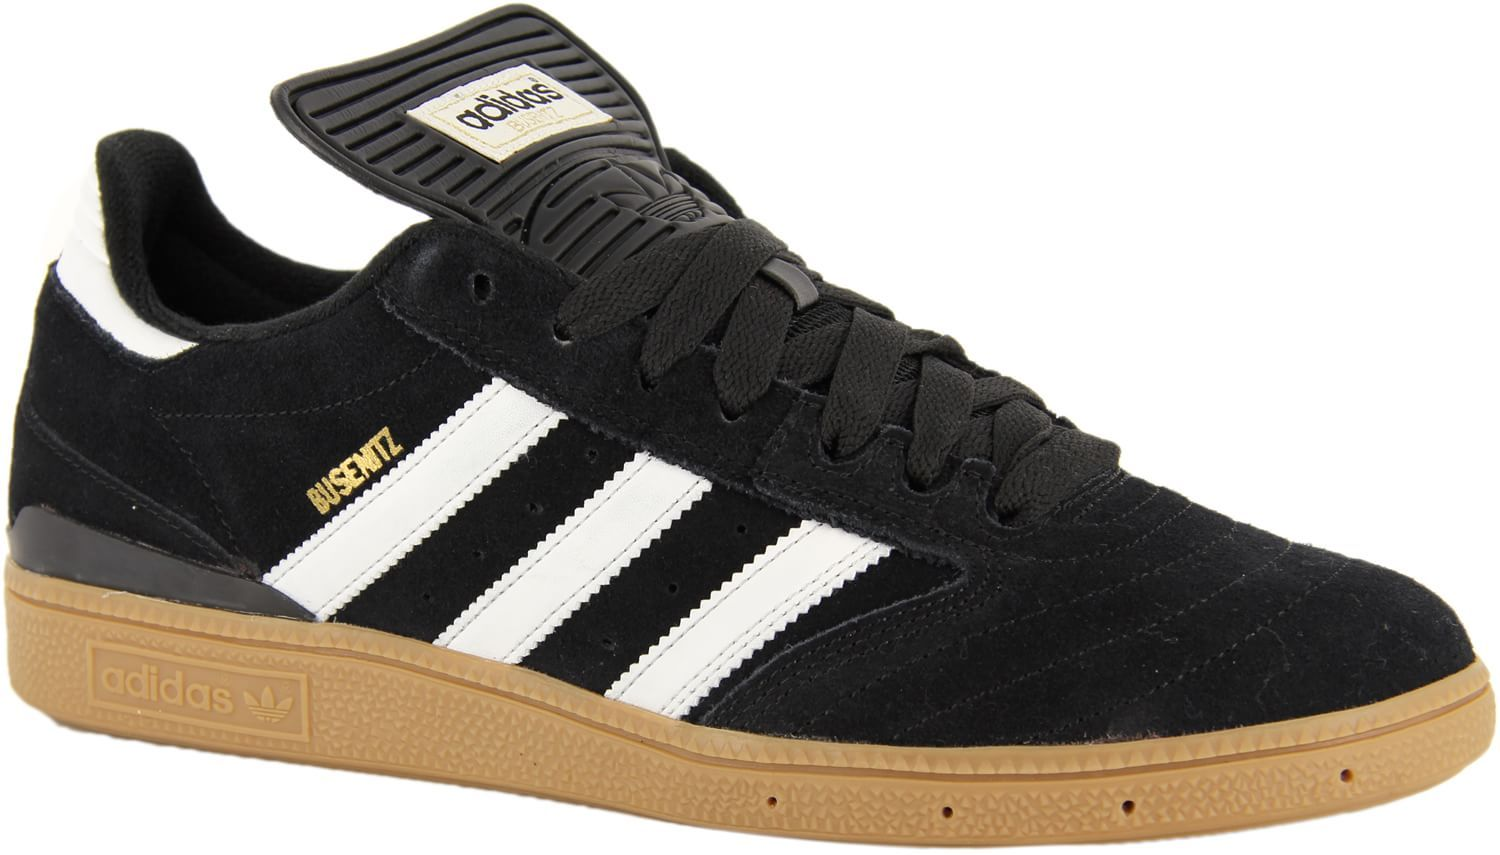 2e1c2a7df89f6 Even if schools out for summer/schools out forever* youre gonna want a pair  from the adidas Campus kicks.